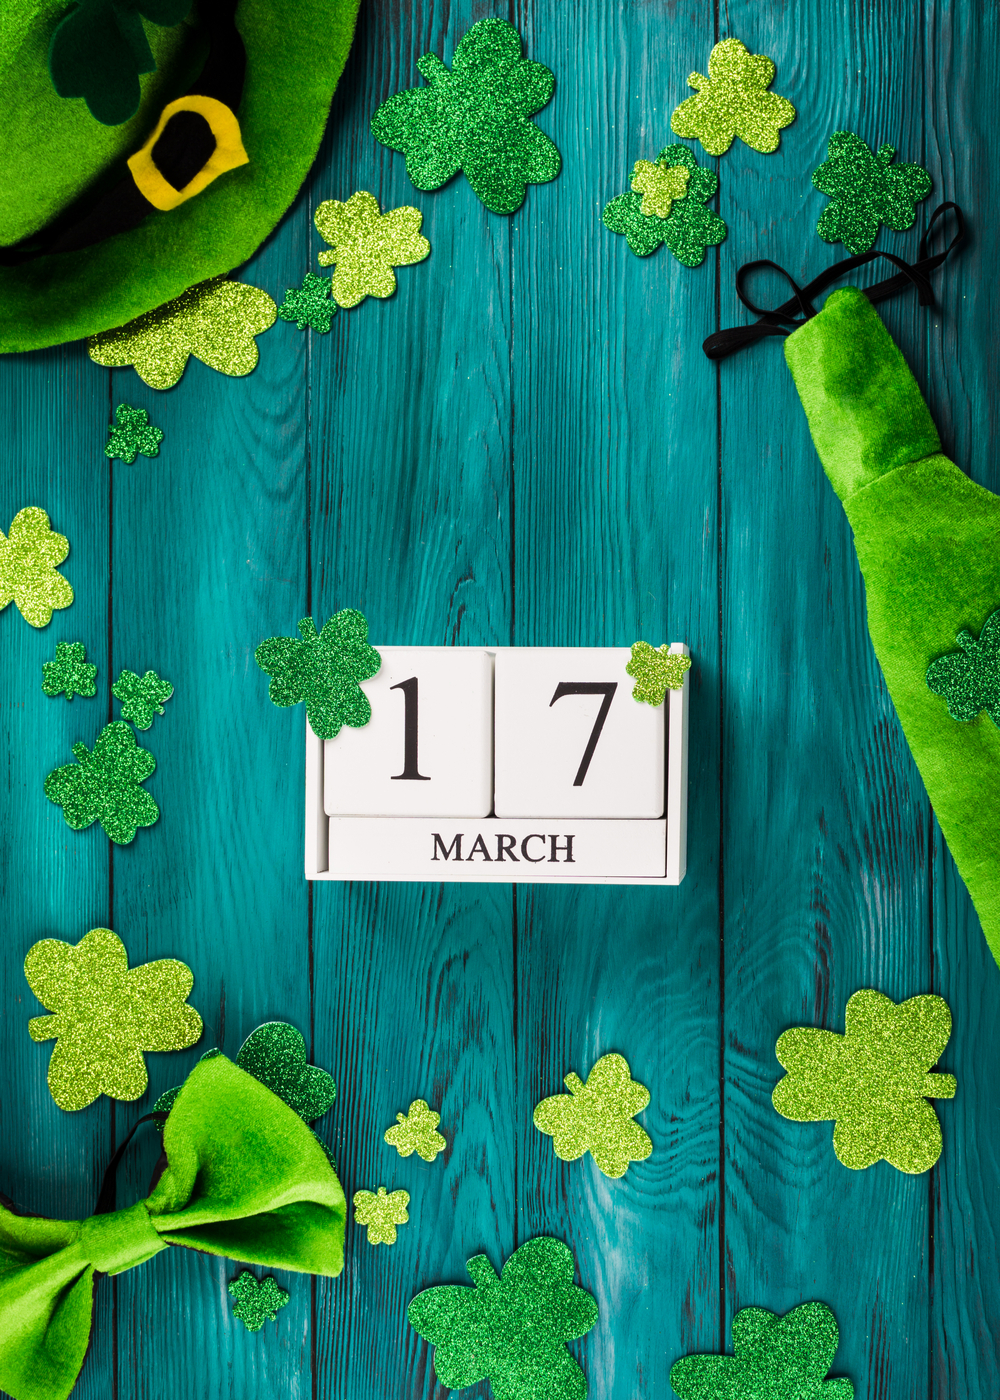 March 17 blocks, glittery shamrocks and a green hat on a table to celebrate the date of St. Patrick's Day.